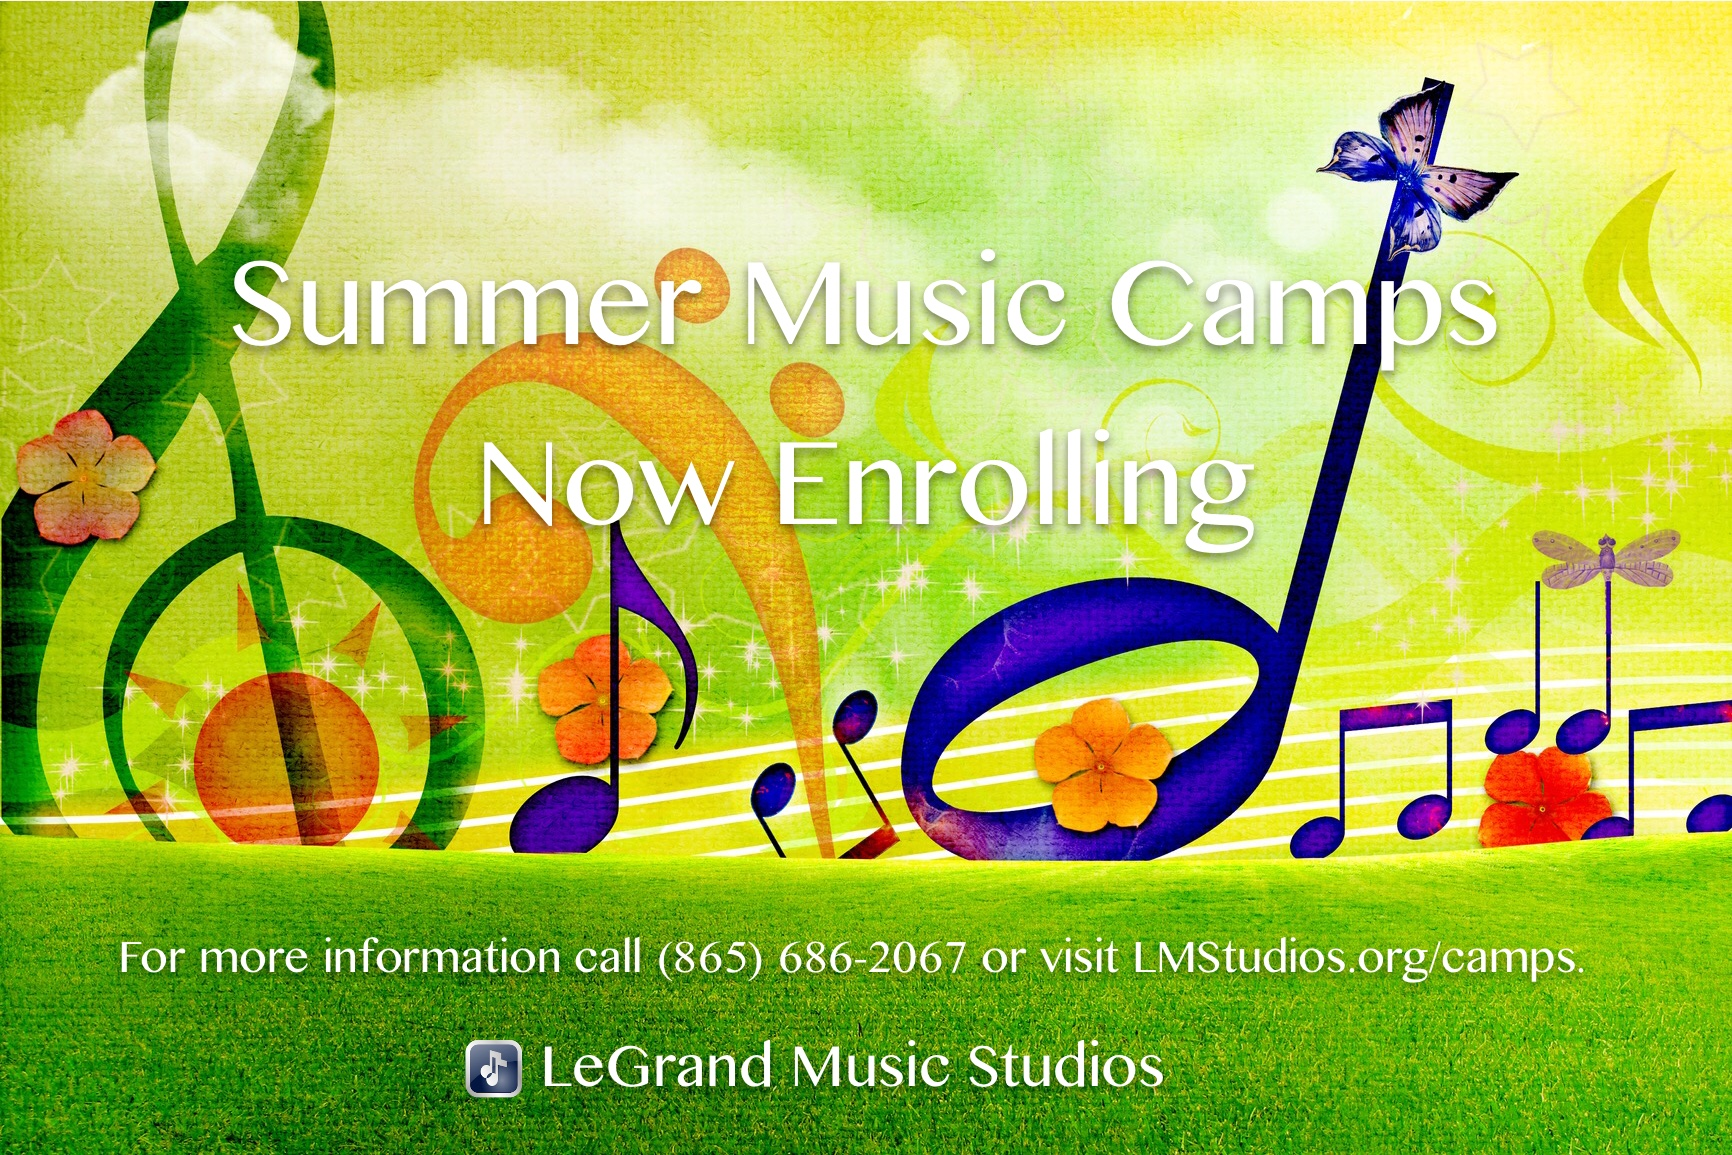 Summer Music Camps are Here!